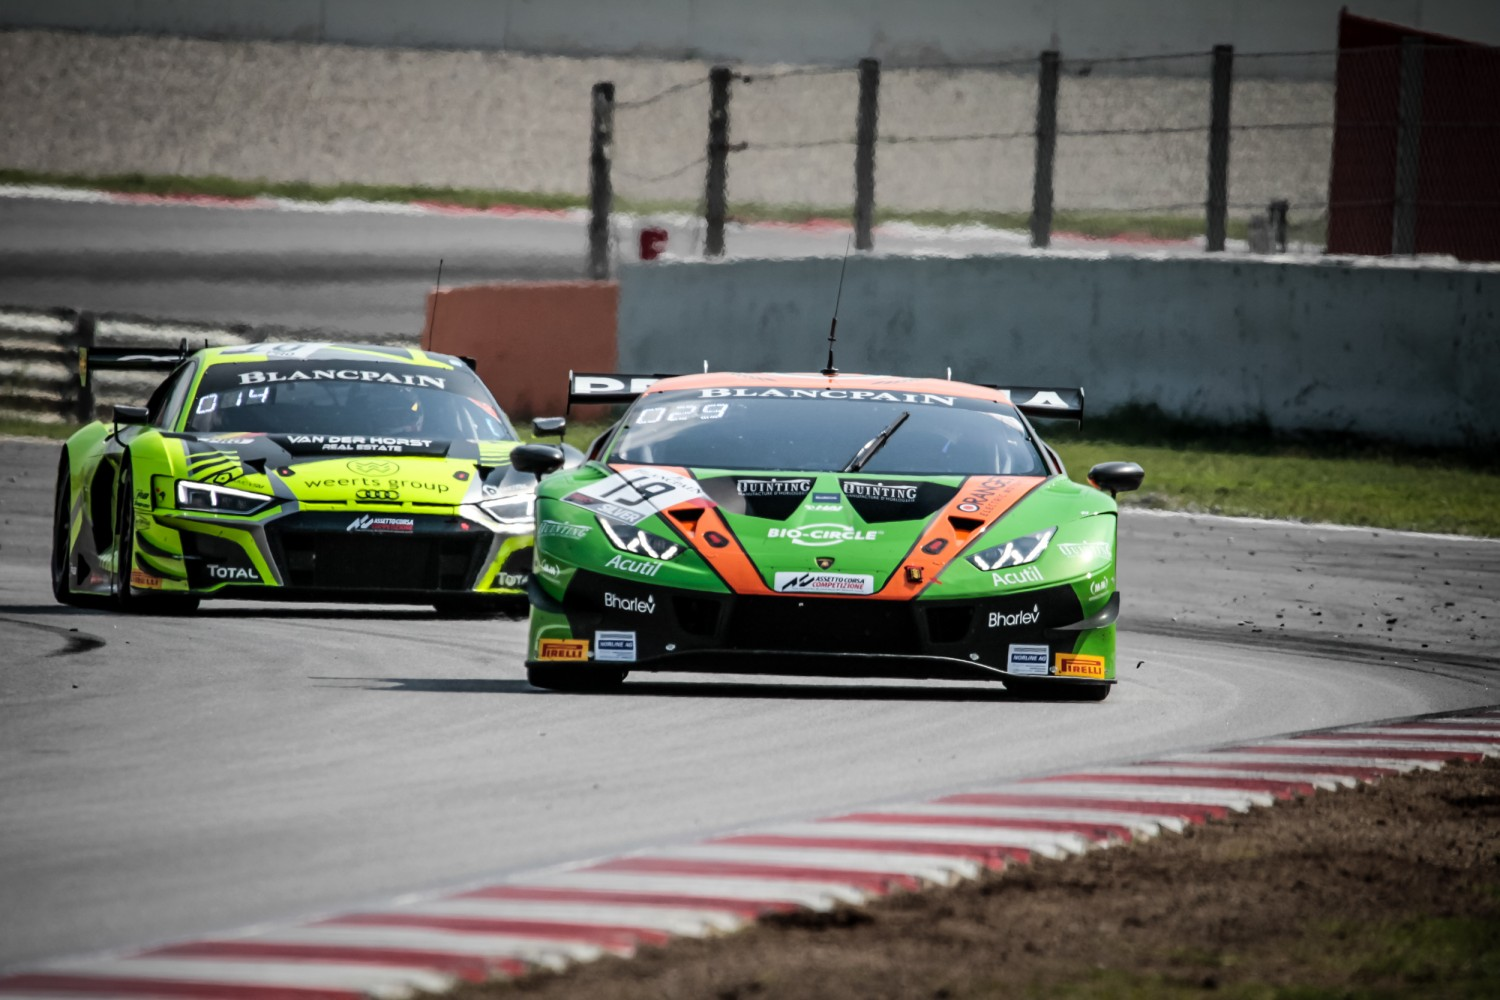 #19 GRT Grasser Racing Team AUT Lamborghini Huracan GT3 2019 Lucas Mauron CHE Gerhard Tweraser AUT Arno Santamato FRA Silver Cup, Friday Sessions  | SRO / Patrick Hecq Photography